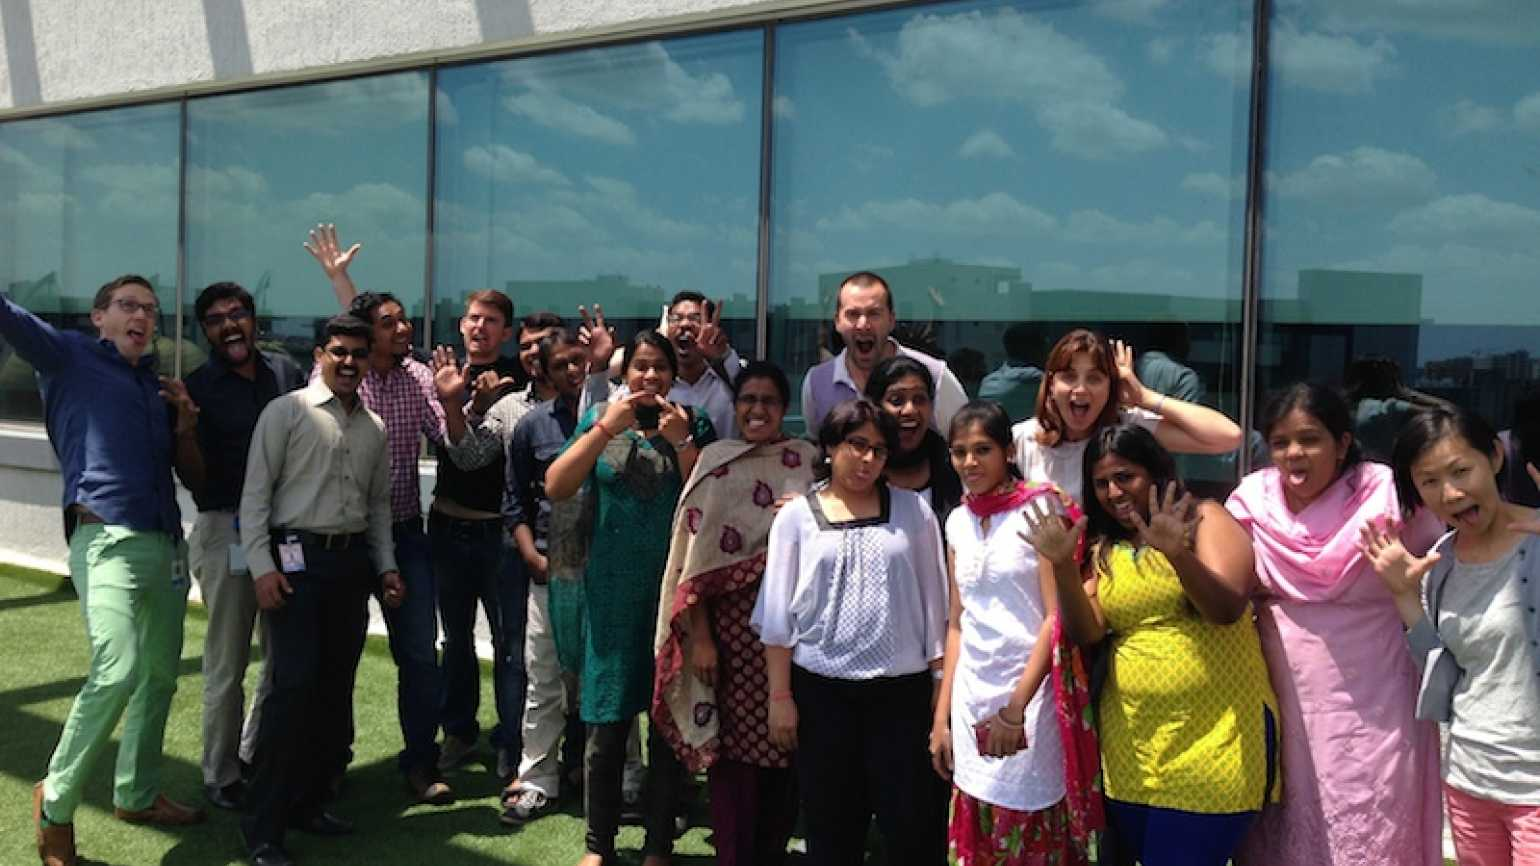 Rick Hamlin's son, far left in green pants, with the LinkedIn team in India